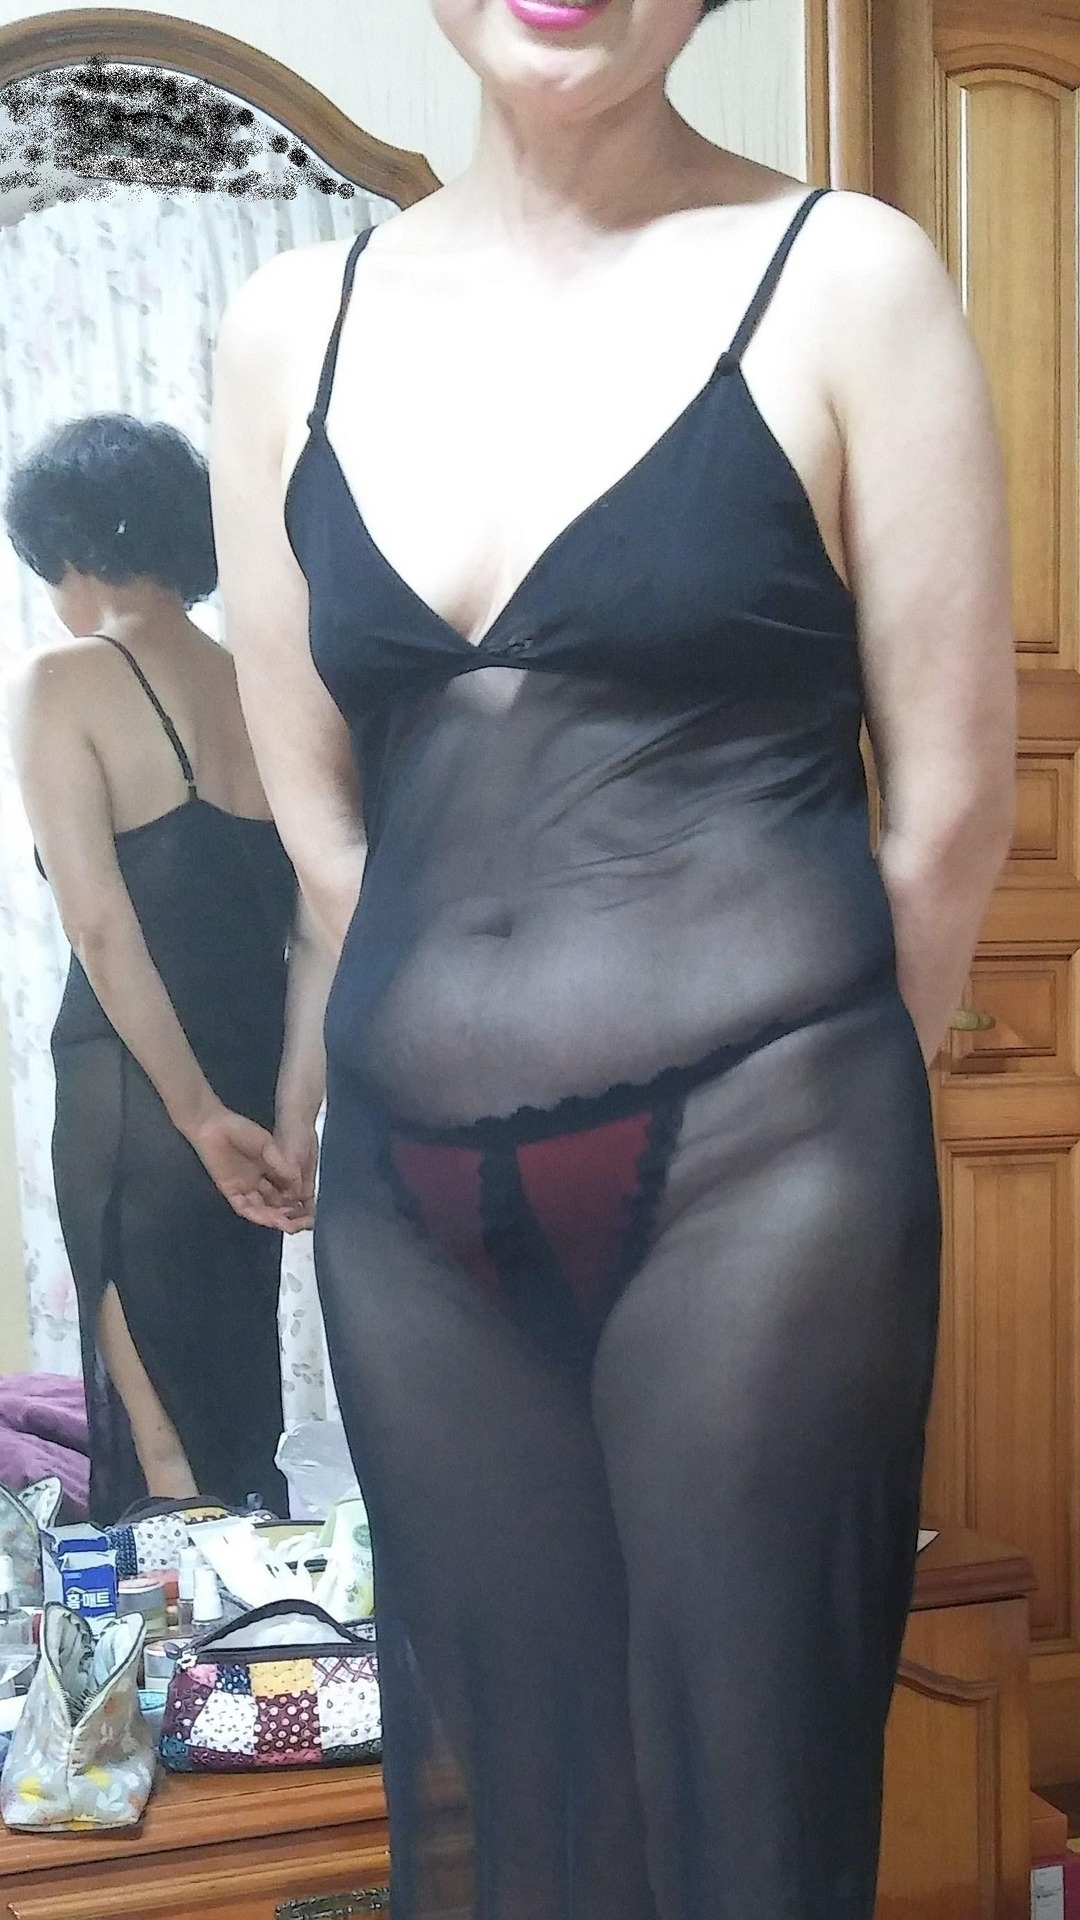 Asian GILF in See-Through Nightie [Submission]